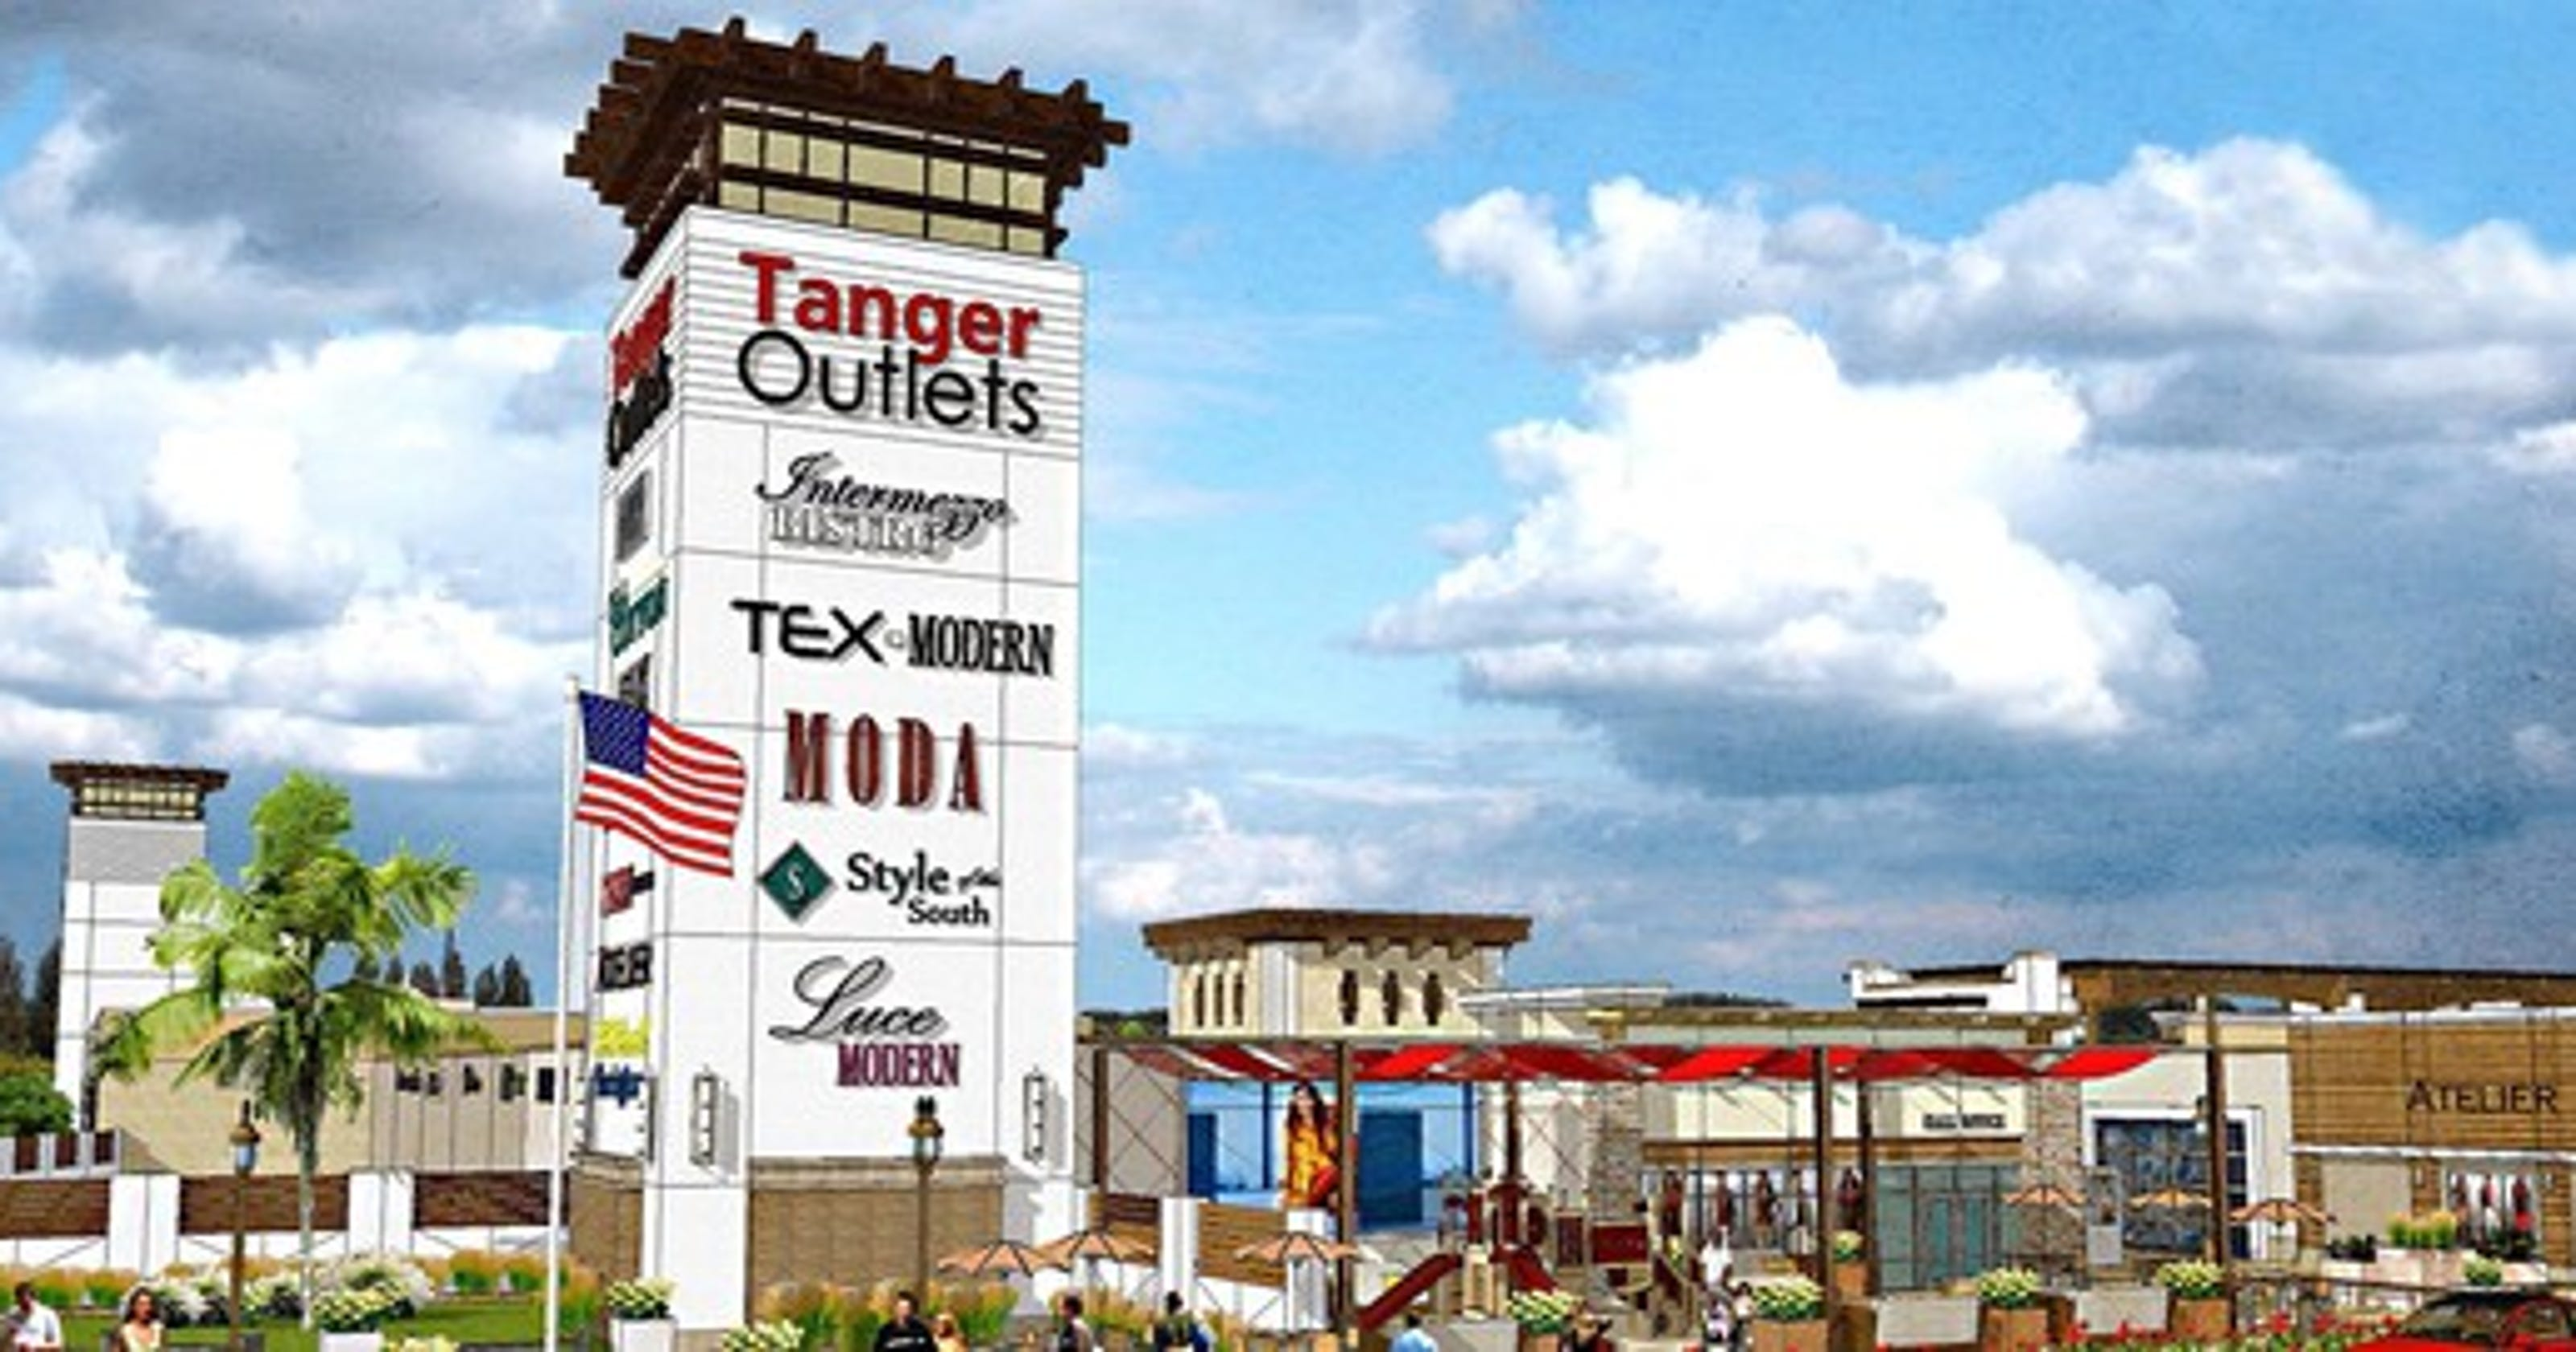 a2dfa020 If Tanger Outlets mall comes to Nashville area, what stores could set up  shop at the Antioch location?